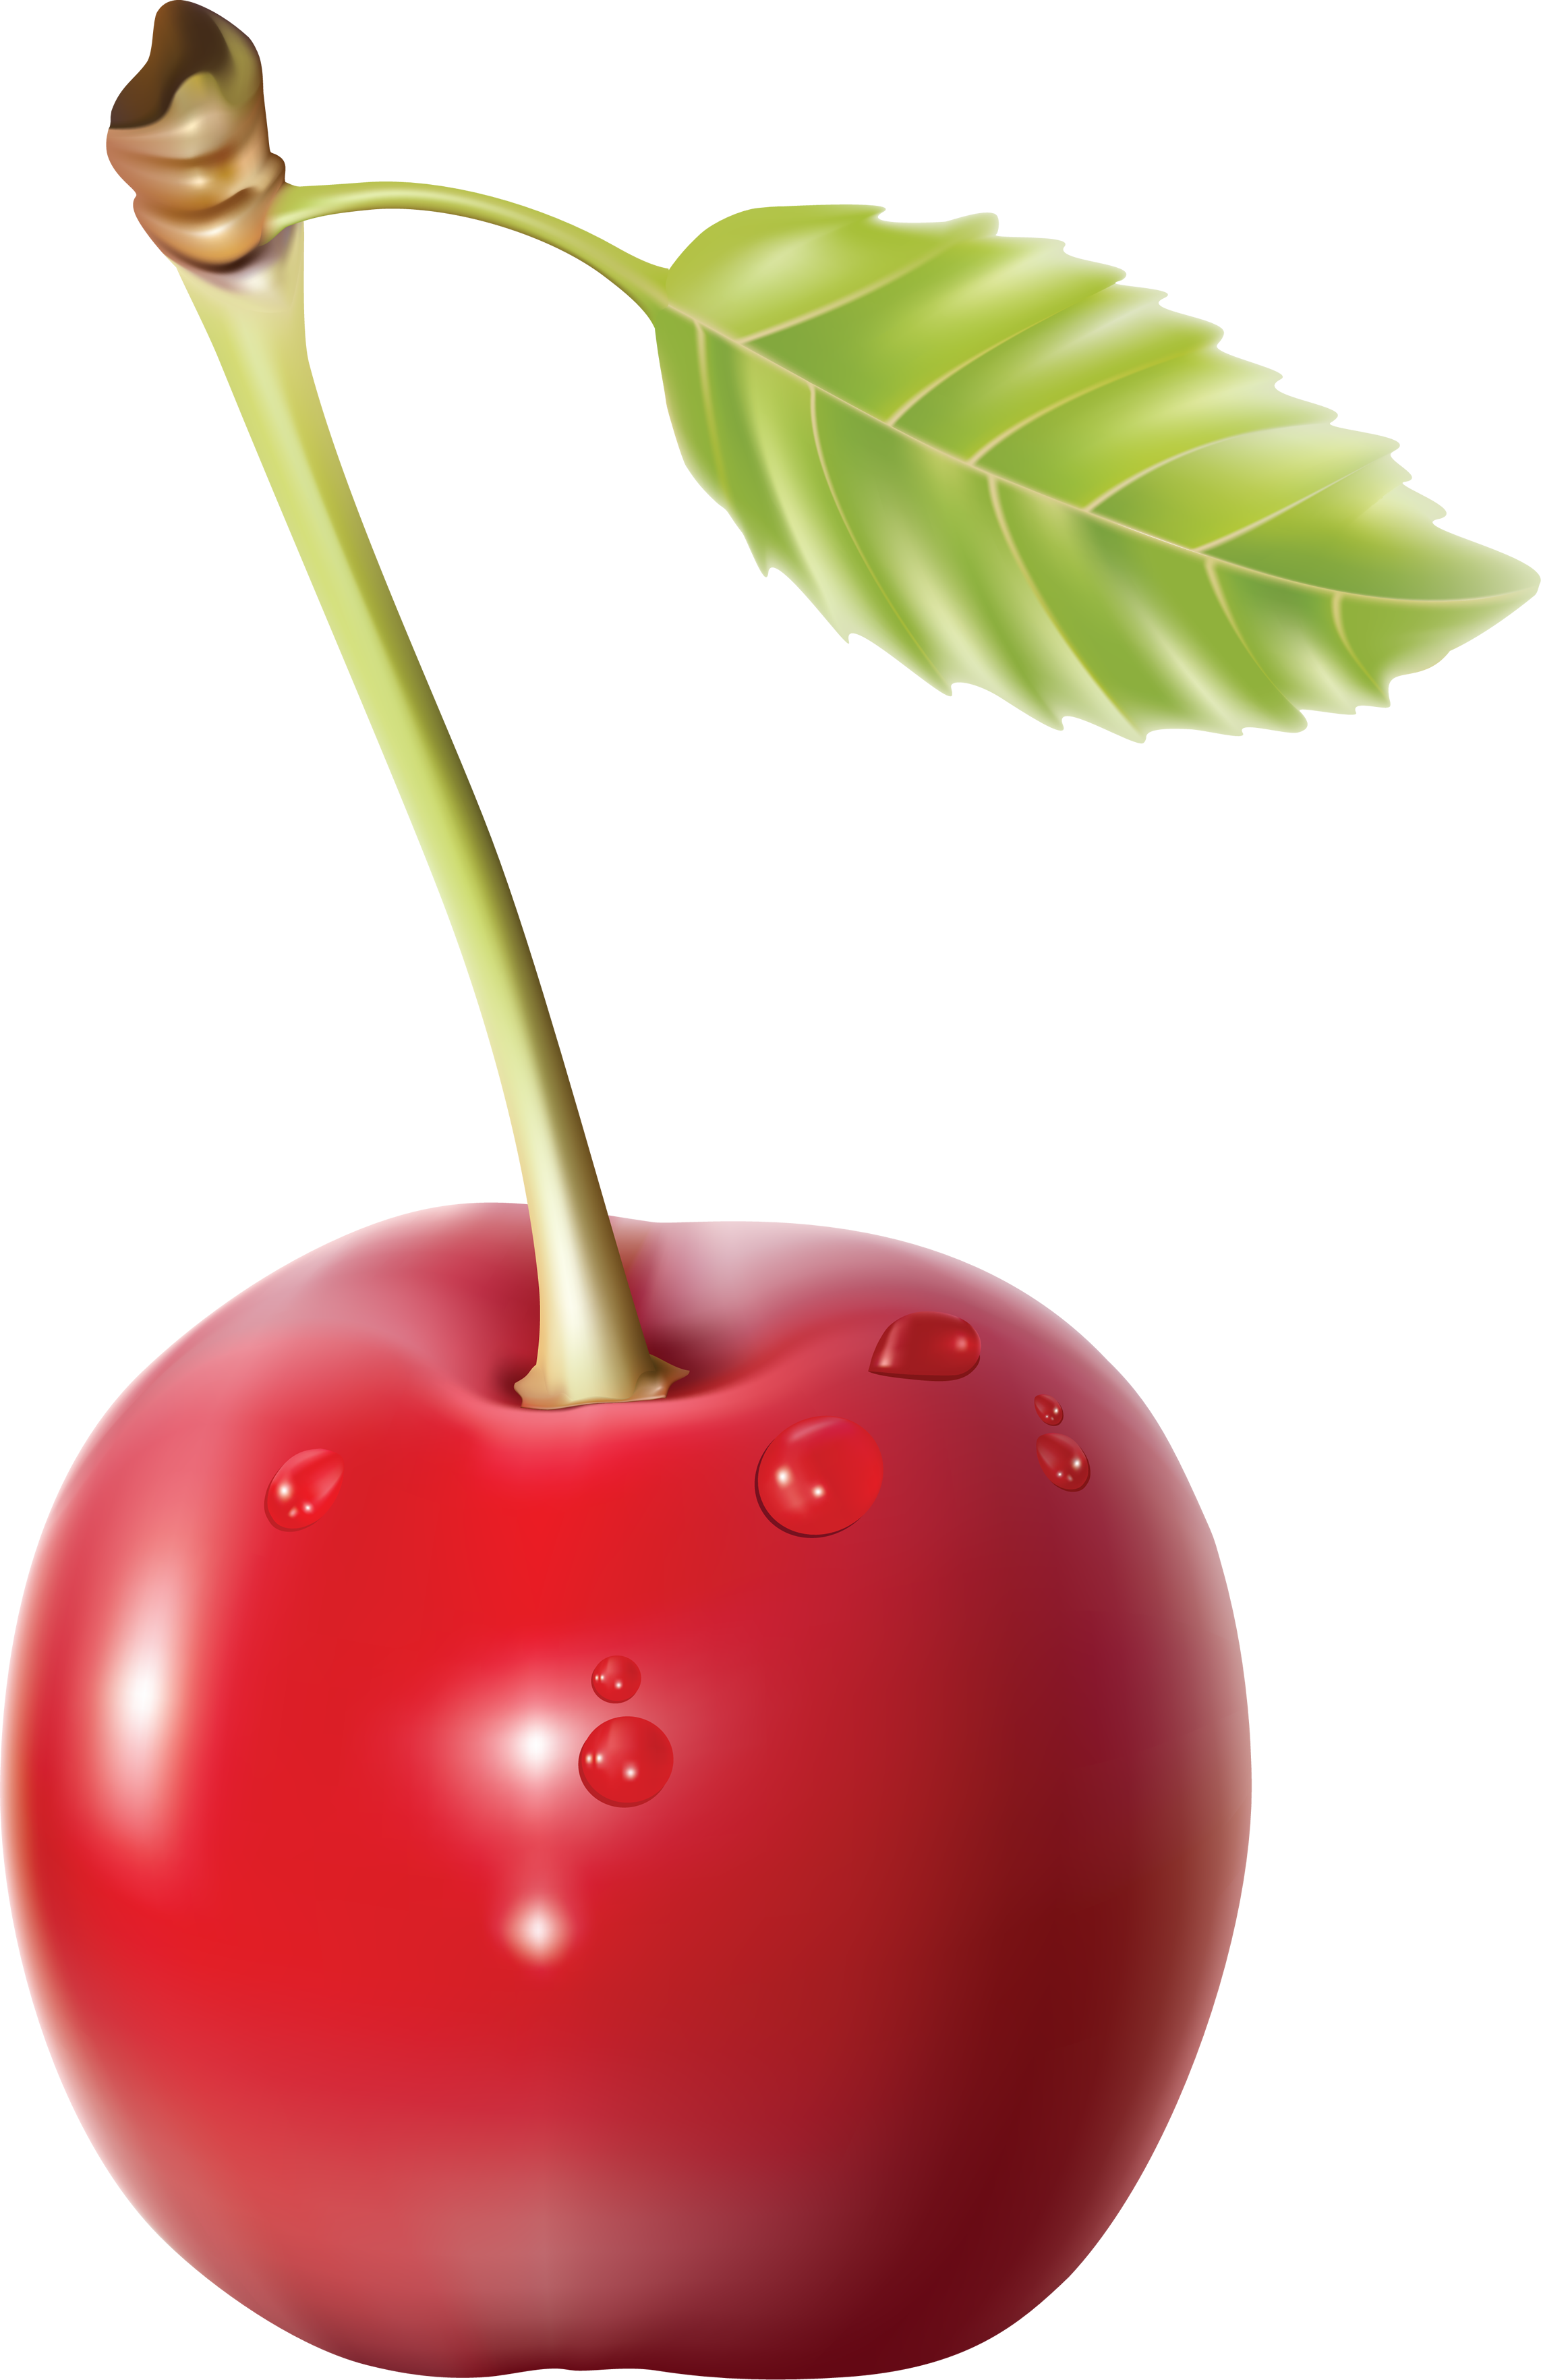 Heart clipart cherry. Png images free download